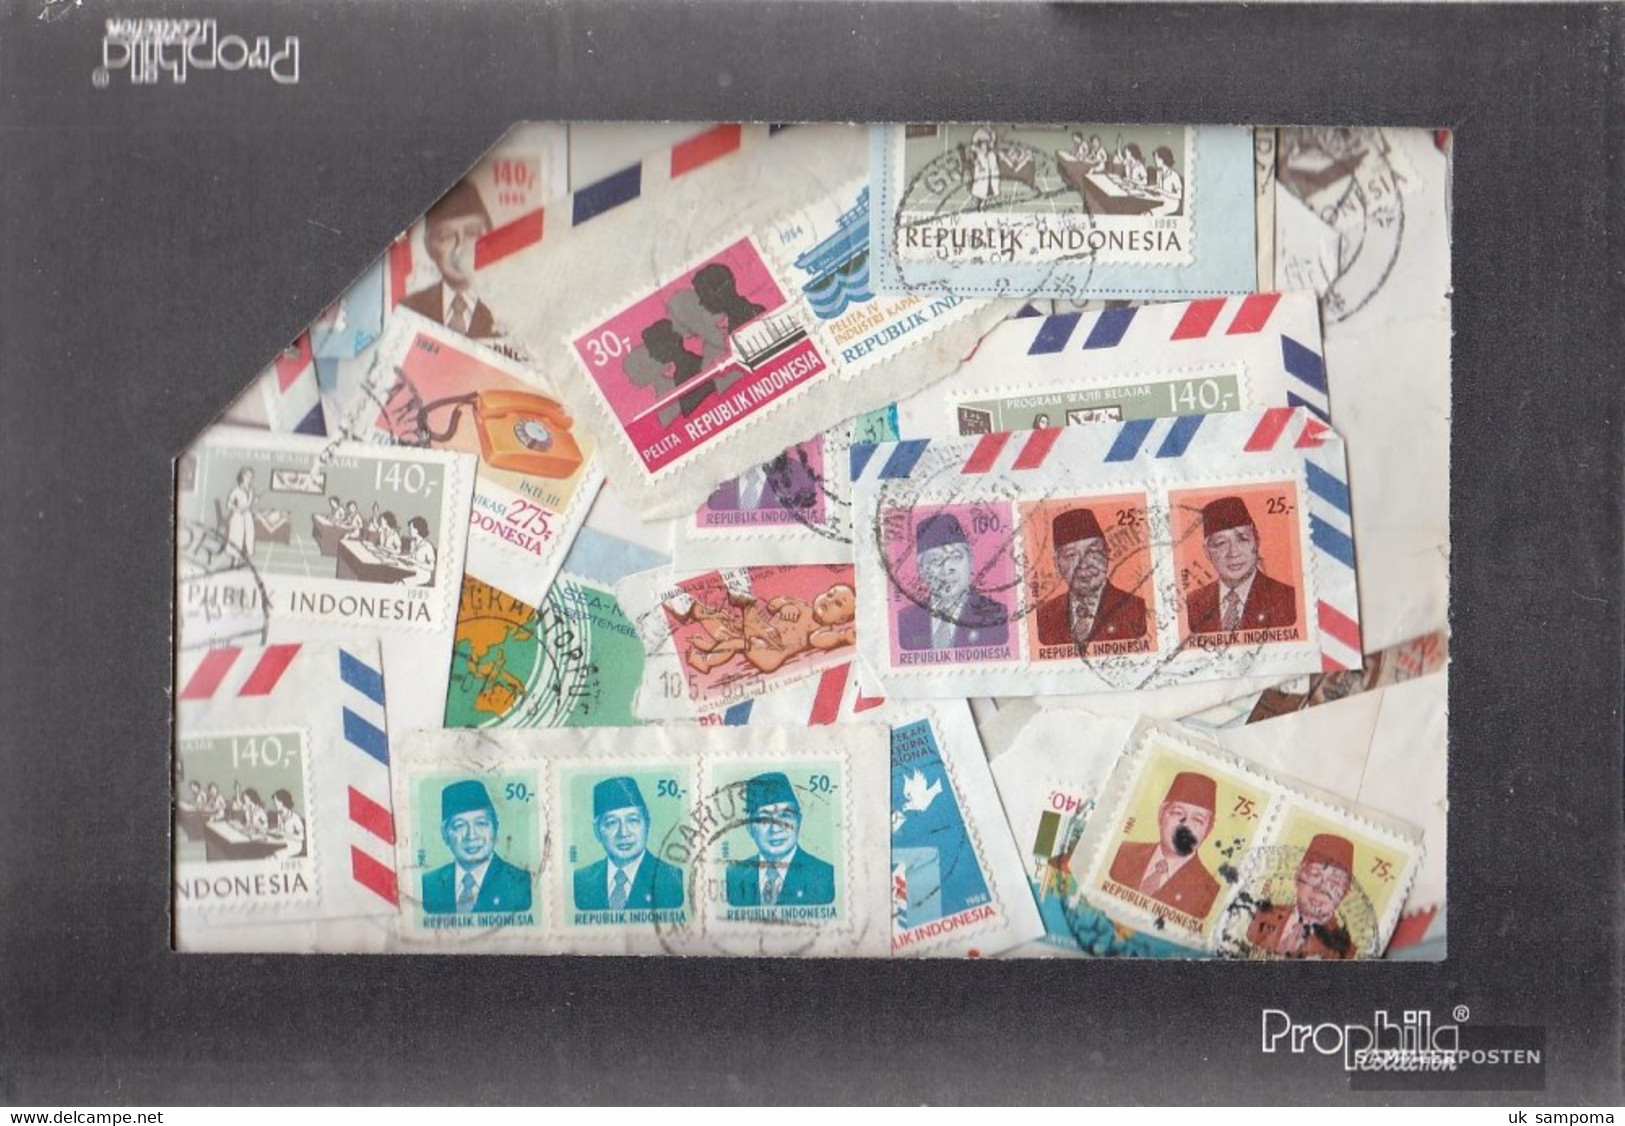 Indonesia 100 Grams Kilo Goods Fine Used / Cancelled With At Least 10% Special Stamps - Stamps